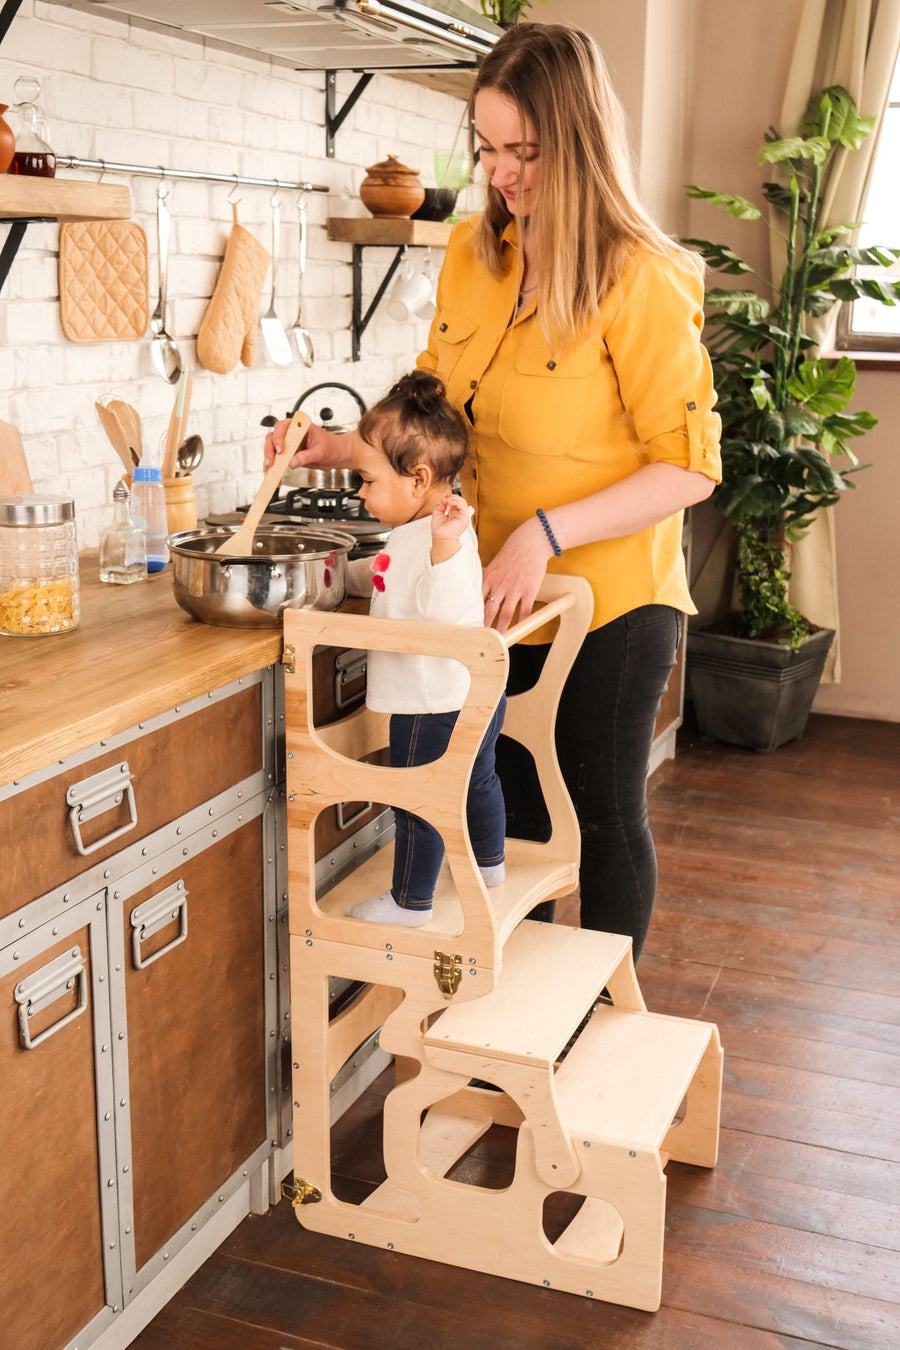 Mom with a child in the kitchen. The child stands on a high chair and reaches the countertop. Kitchen step stool chair.